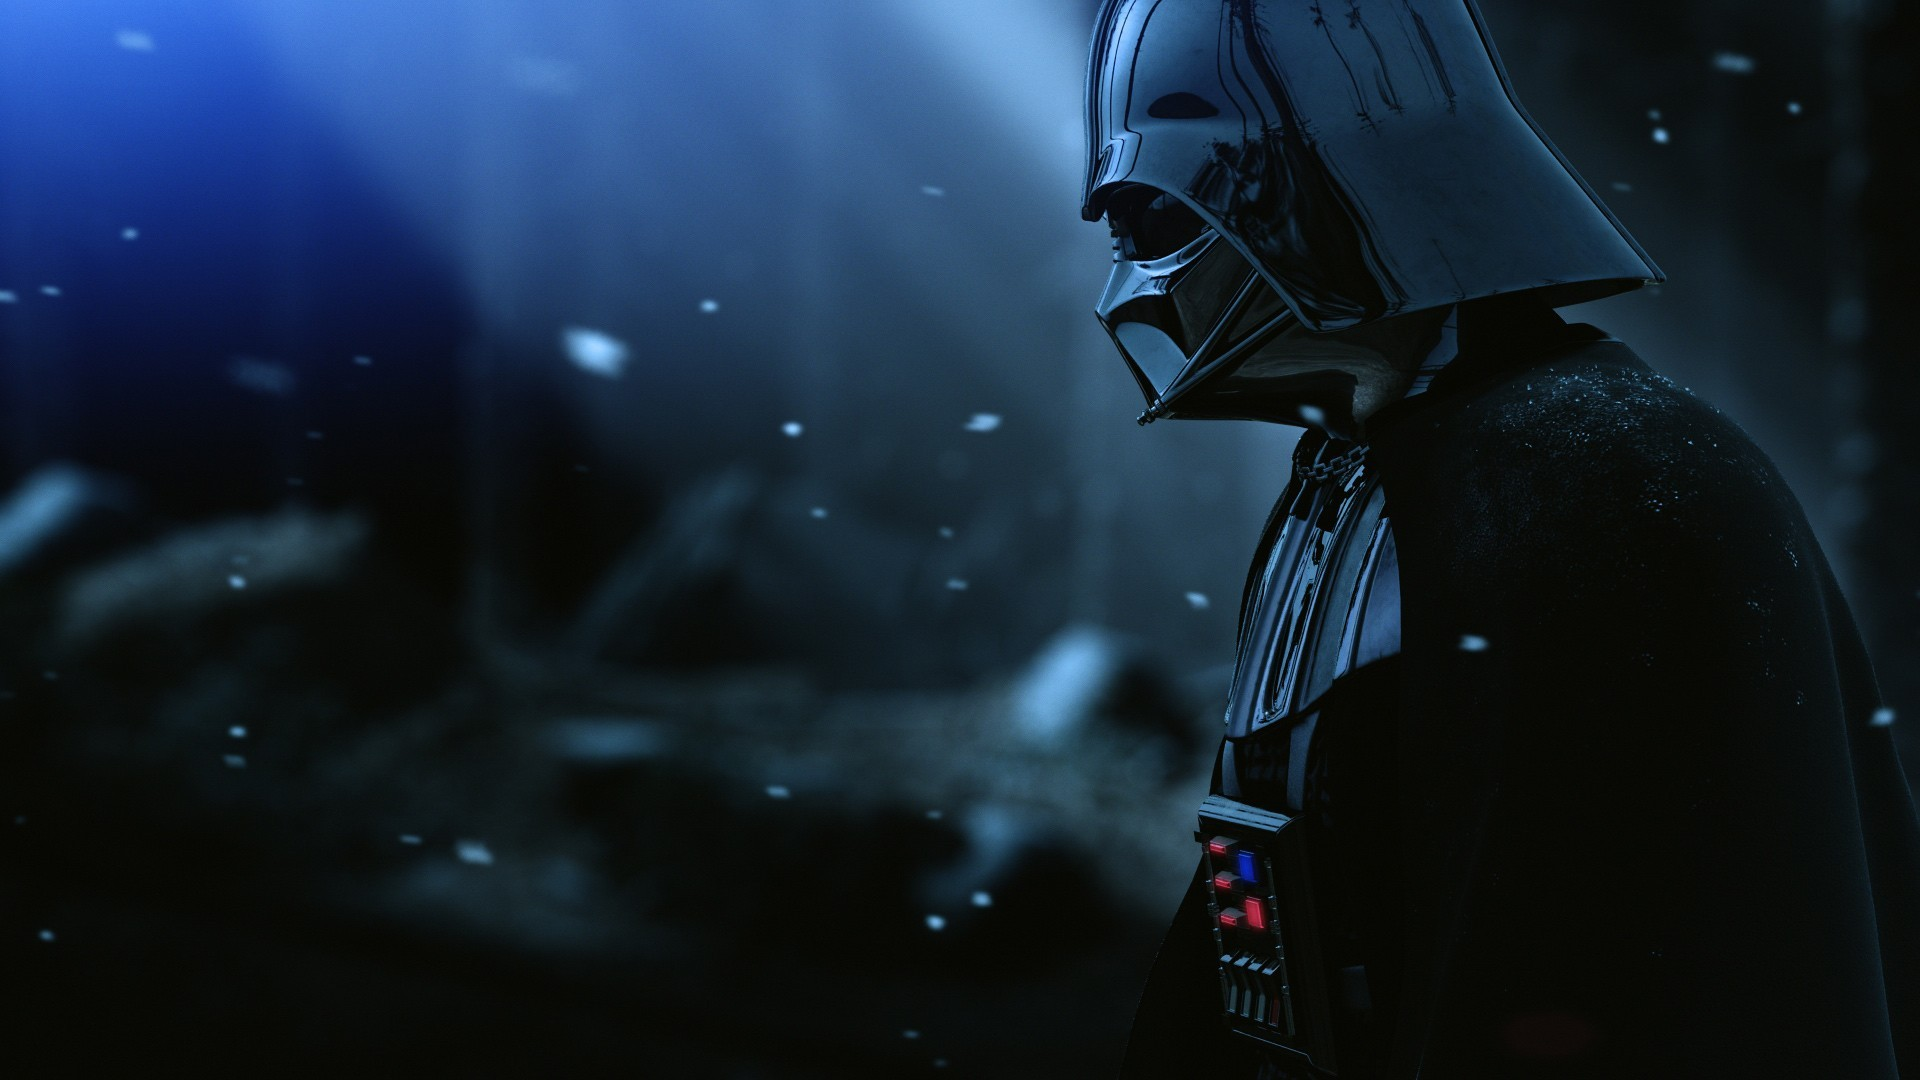 Star Wars Wallpapers warrior